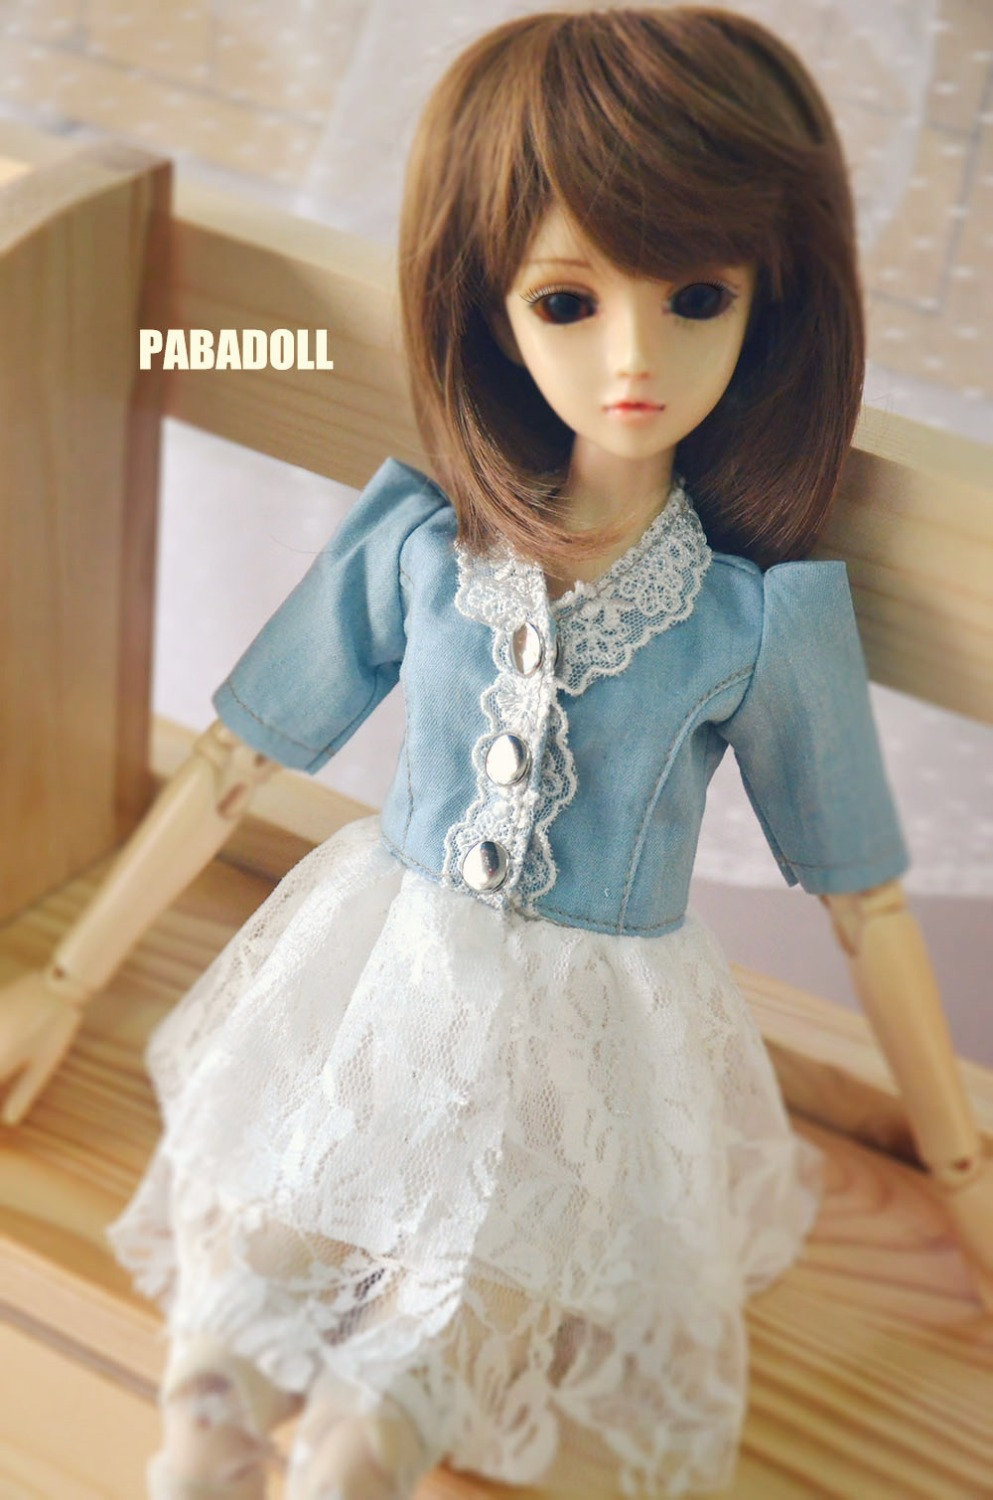 New BJD Doll Jeans Lace Dress for Bjd doll 1/6YOSD 1/4 MSD,1/3,SD10 SD13,SD16 IP EID Luts DOD,SD Doll Clothes CWB21 new 1 3 22 23cm 1 4 18 18 5cm bjd sd dod luts dollfie doll orange black short handsome wig